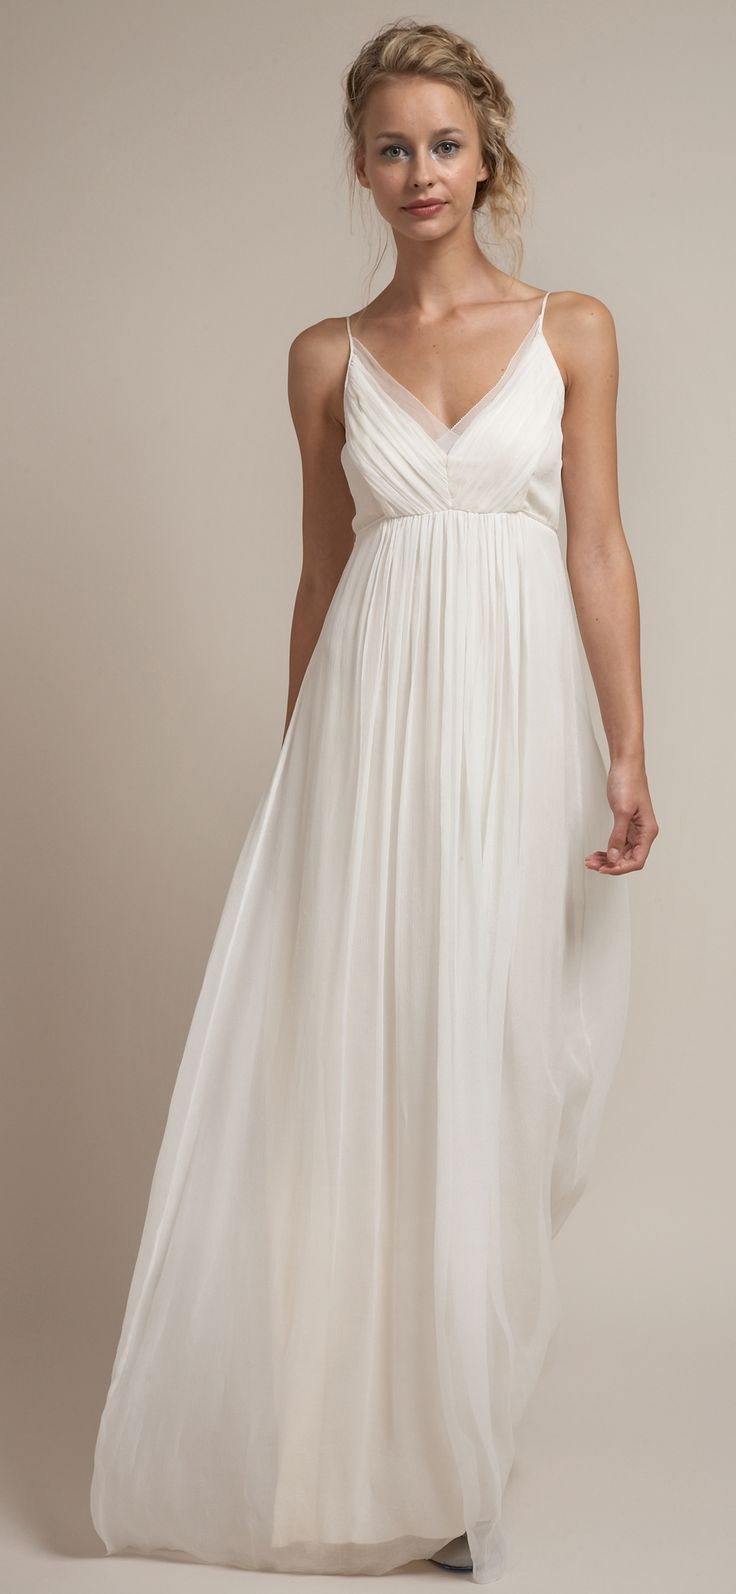 Casual Chiffon Beach Wedding Dress With Spaghetti Strap Front For ...